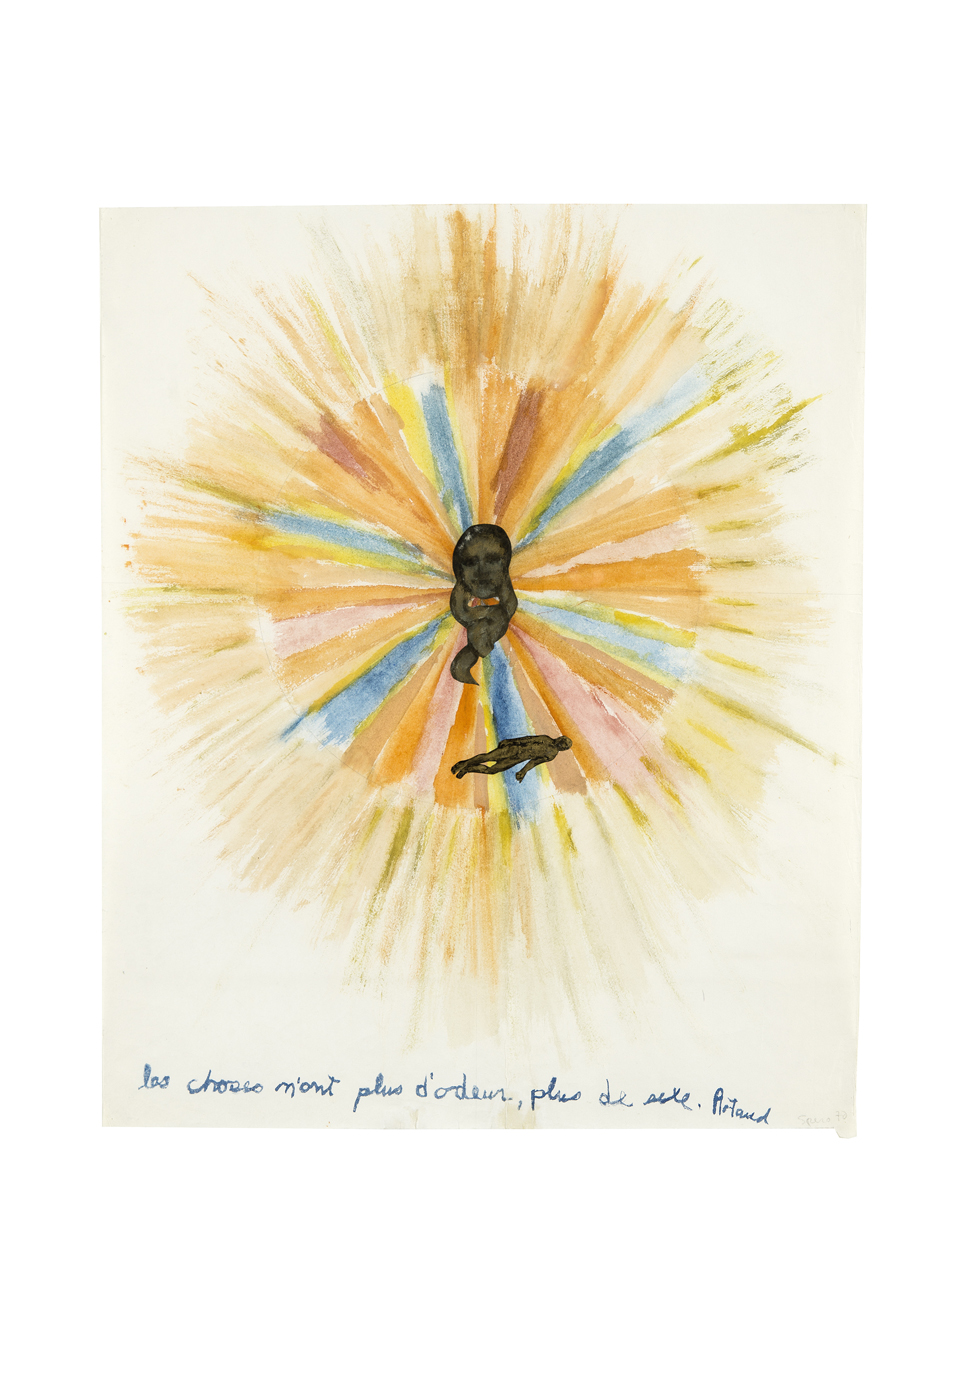 "Nancy Spero: ""Artaud Paintings - Les Choses n'ont plus d'odeur"", 1970, Courtesy of the Artist"